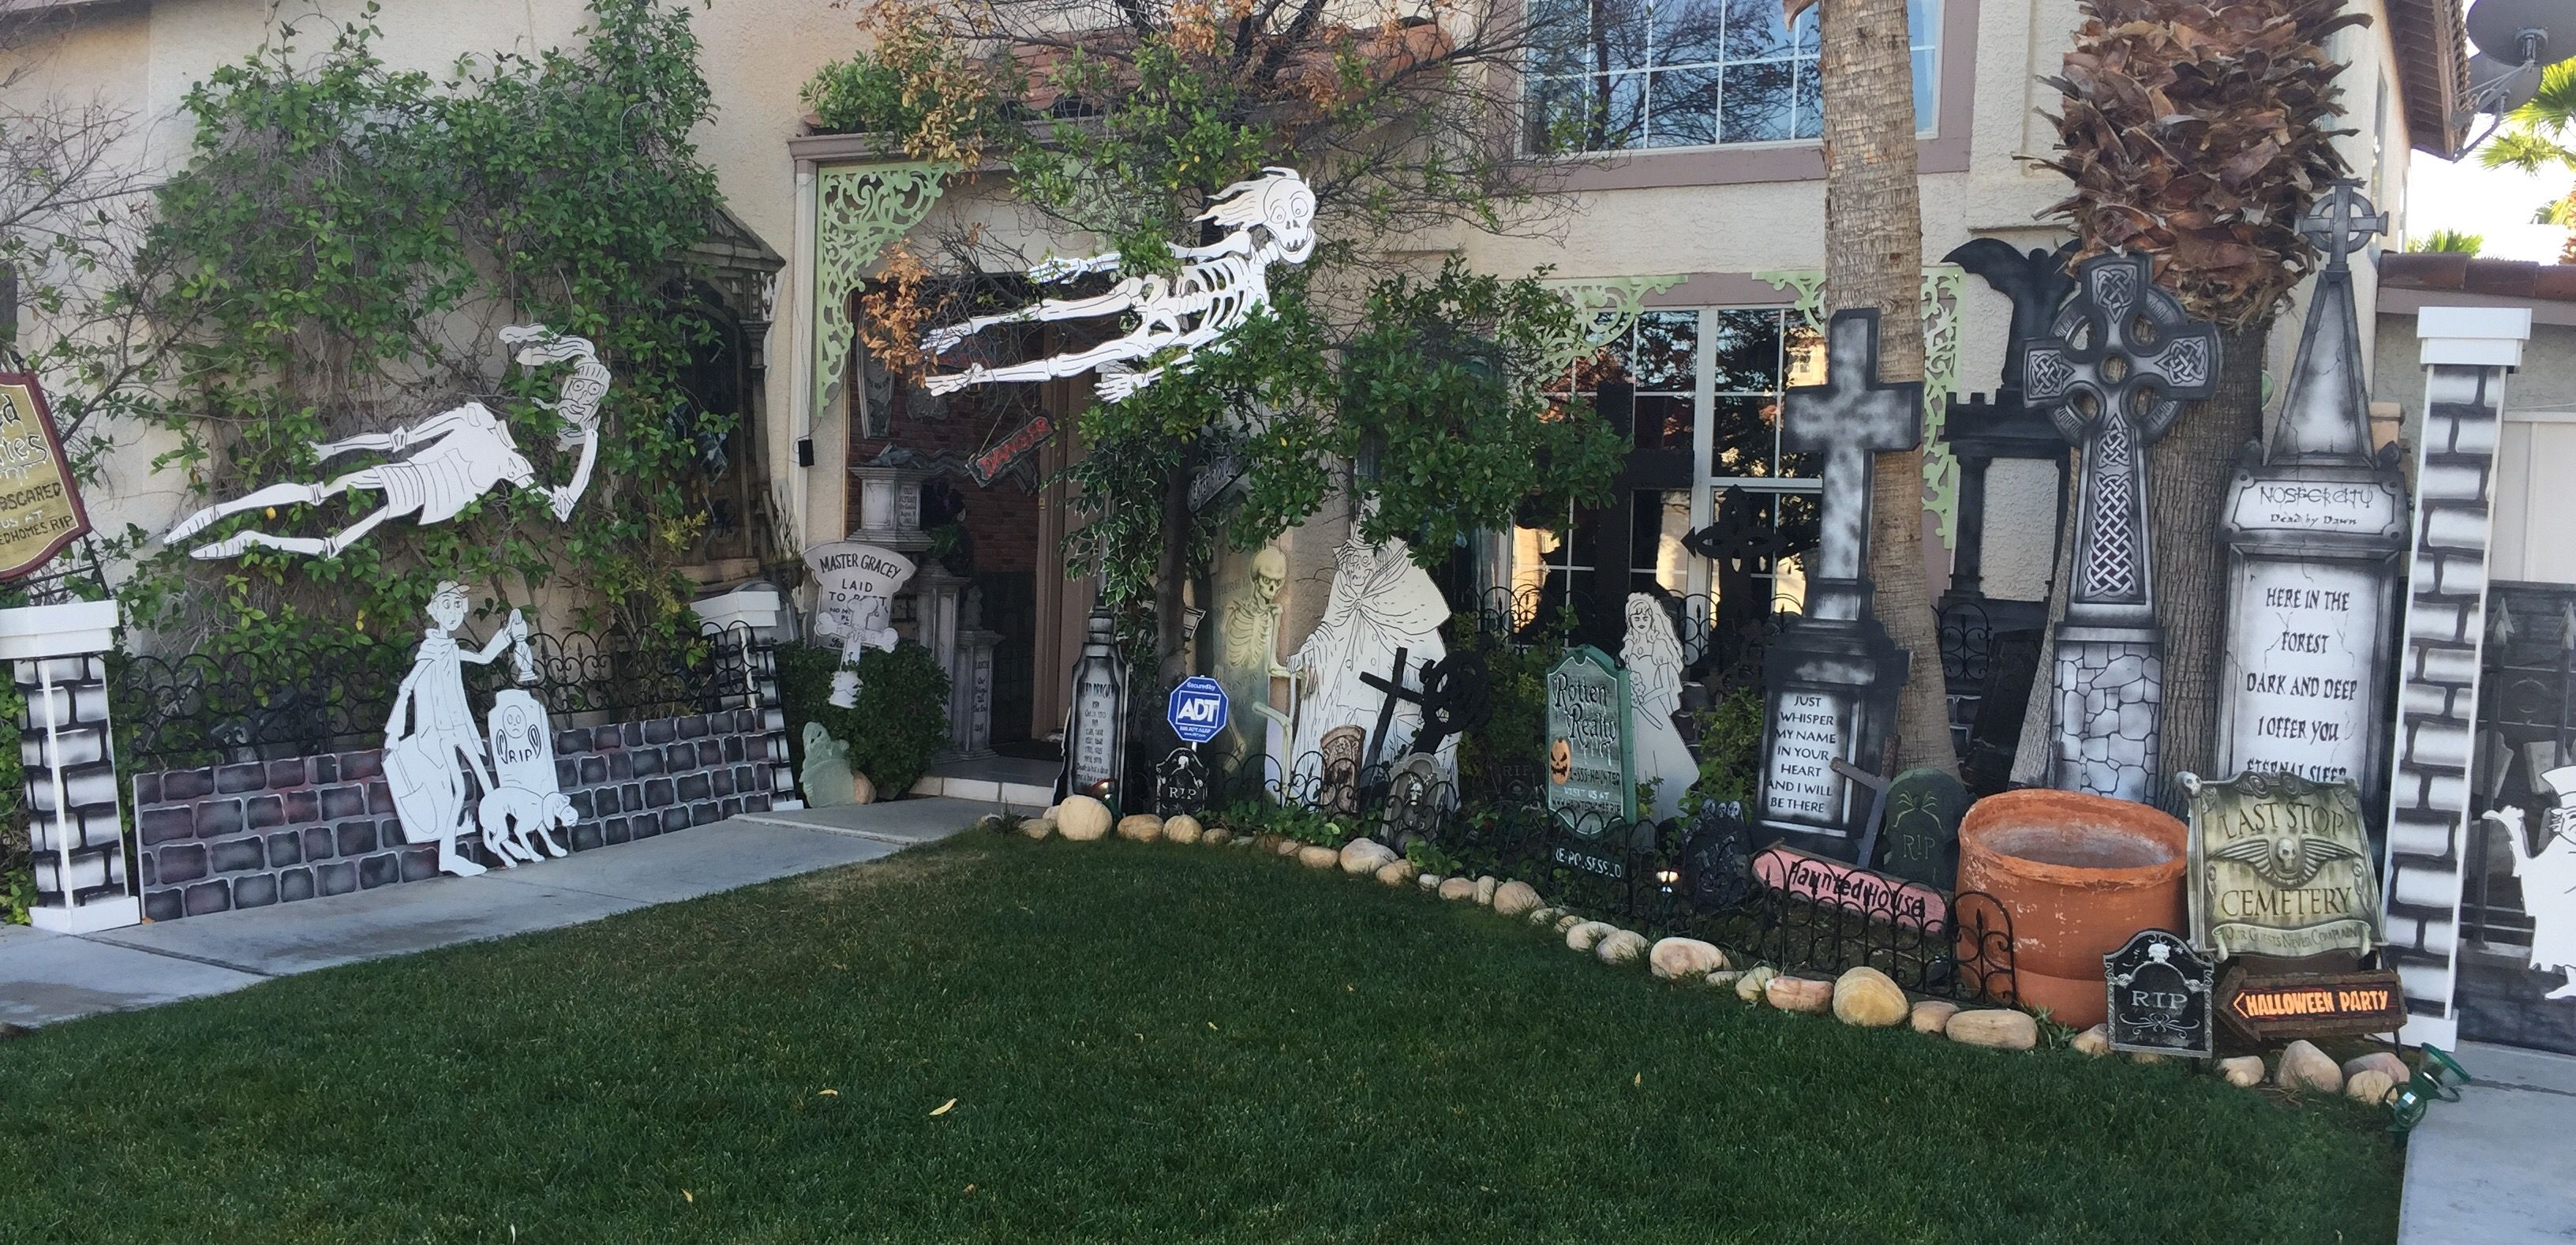 My Own Props Halloween 2016 Haunted Mansion Front Yard Haunted Mansion Halloween Tombstones Halloween Inspiration Haunted house ideas for backyard